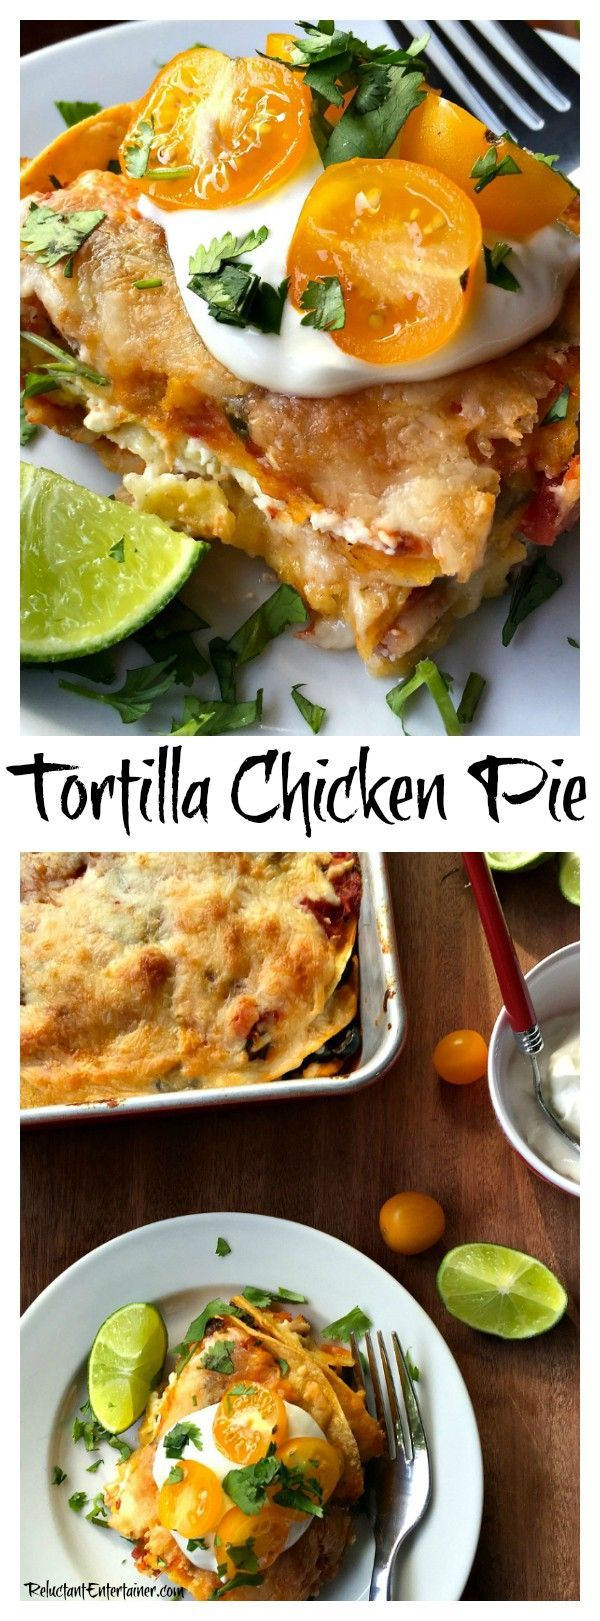 Tortilla Chicken Pie recipe is a quick taco pie meal to ...